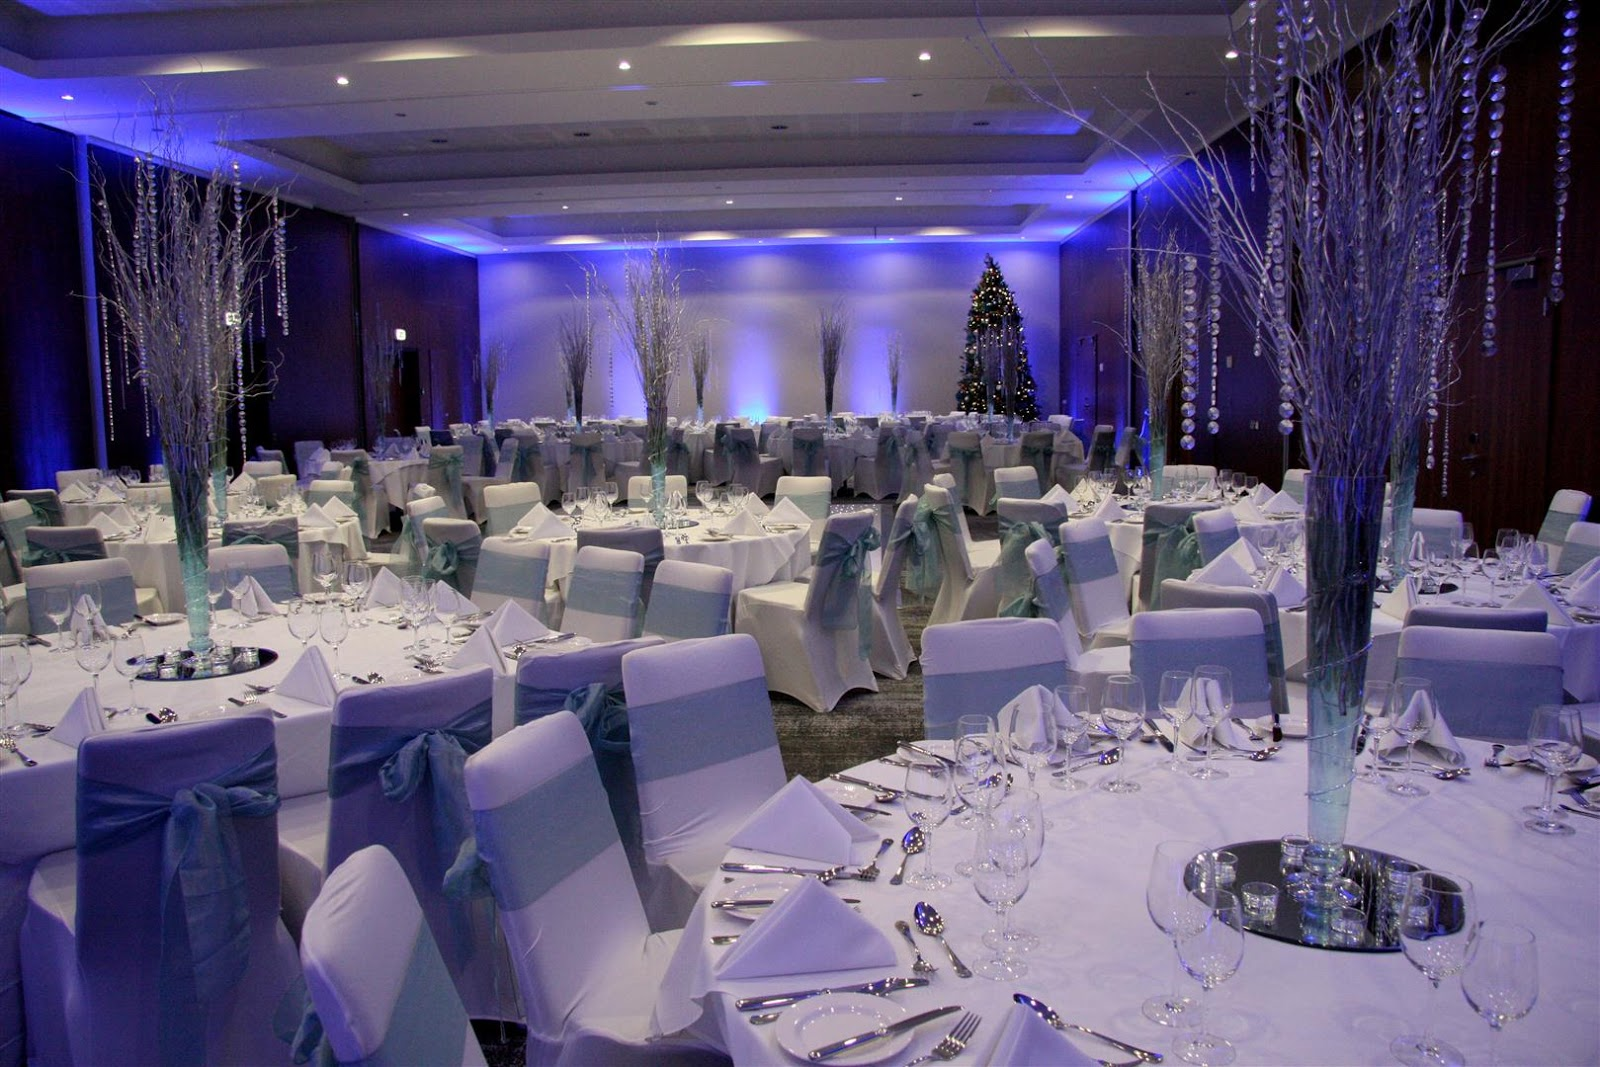 Royal Court Hotel Coventry Christmas Parties